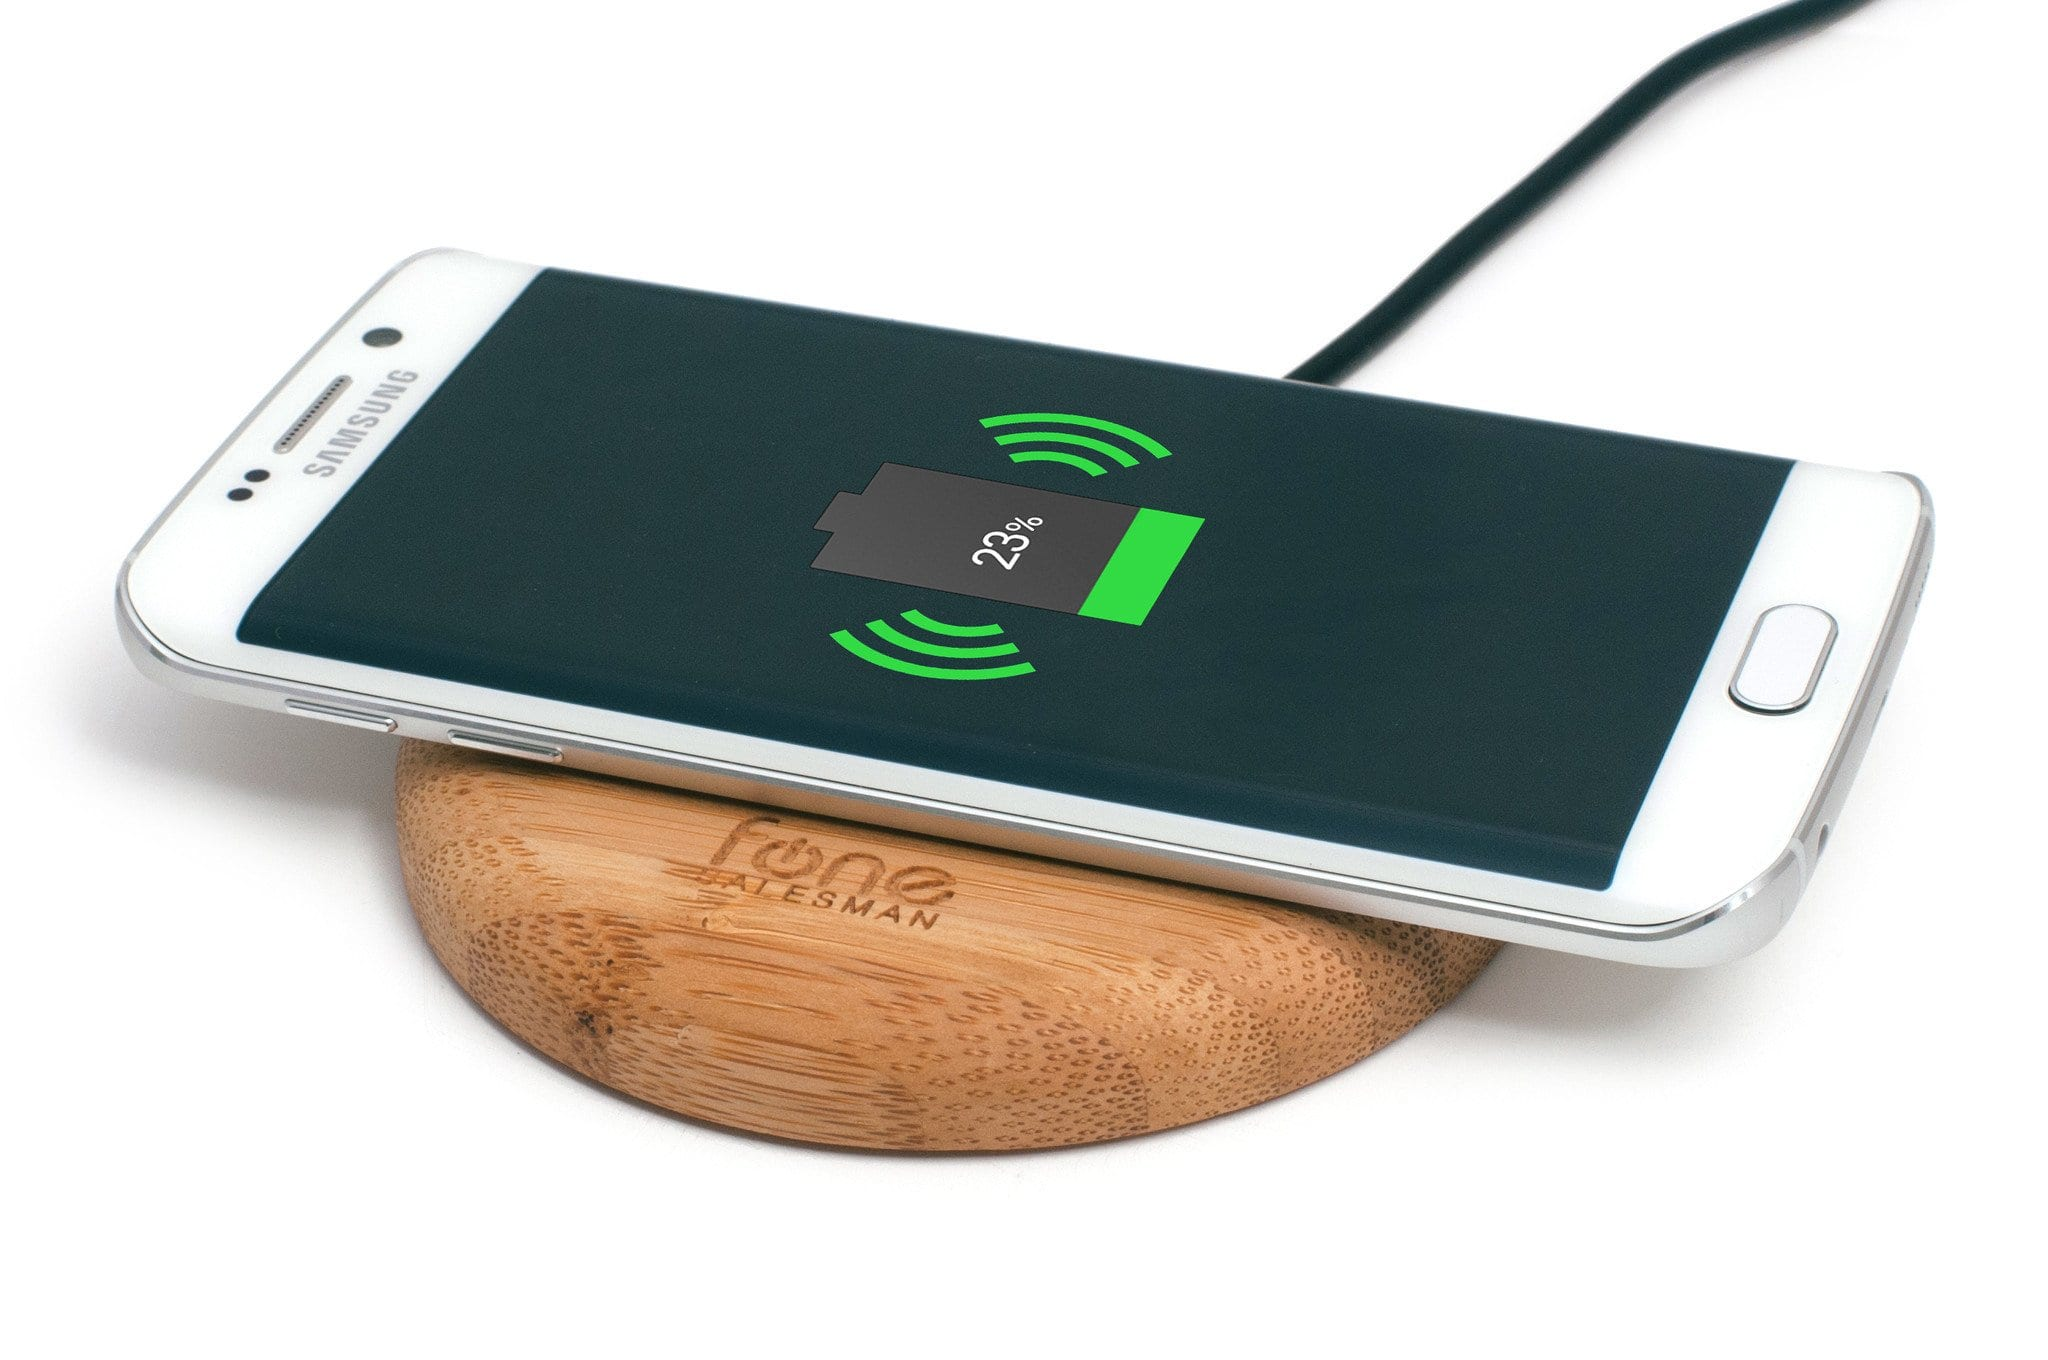 Energous shares soar on FCC certification of wireless charger